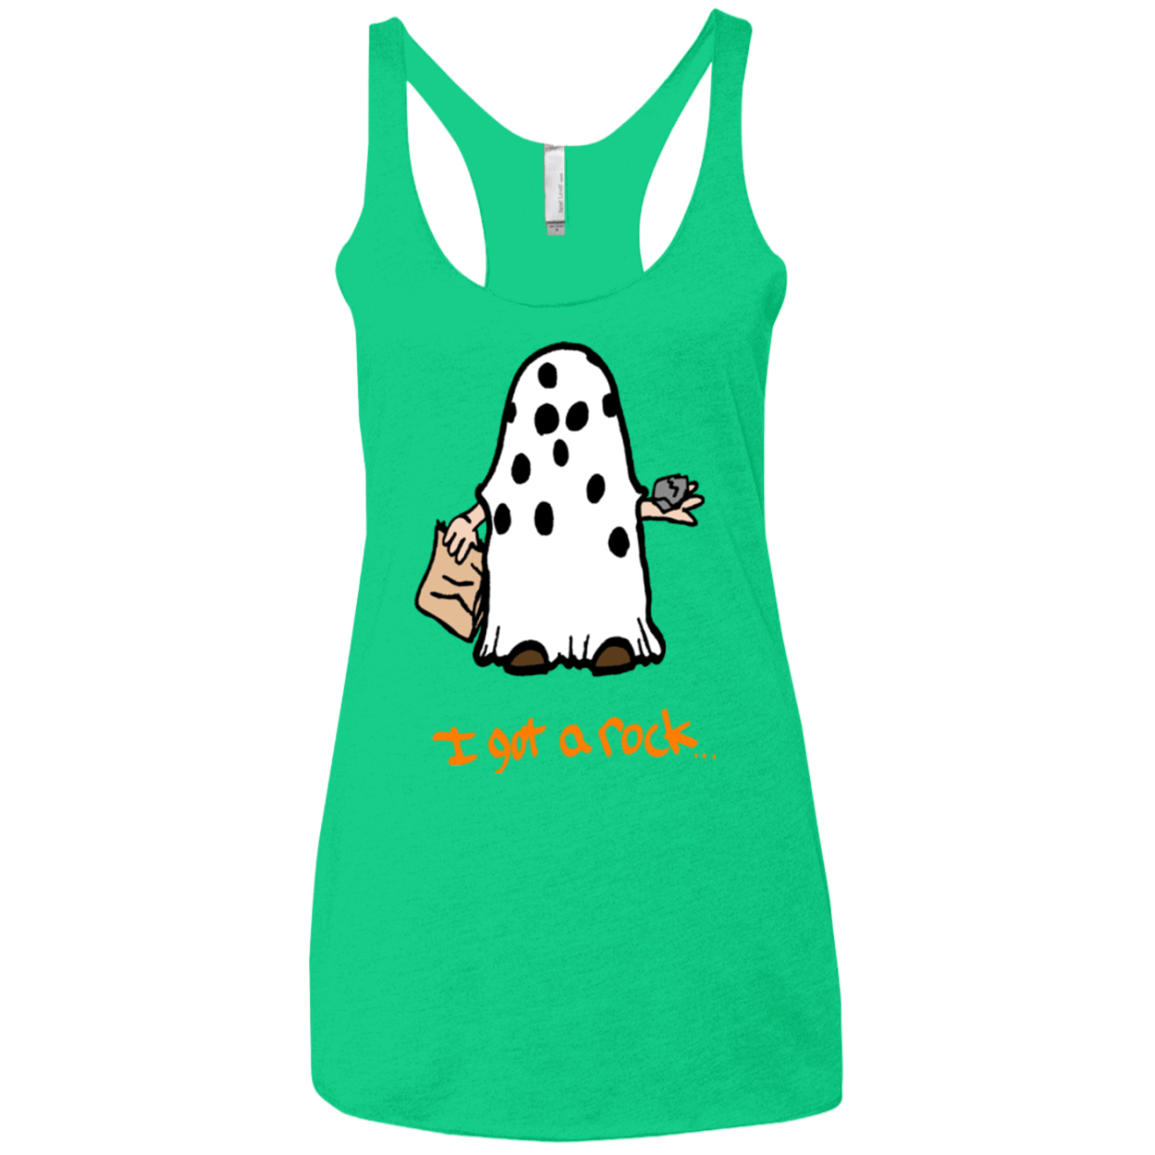 I got A rock Women's Triblend Racerback Tank